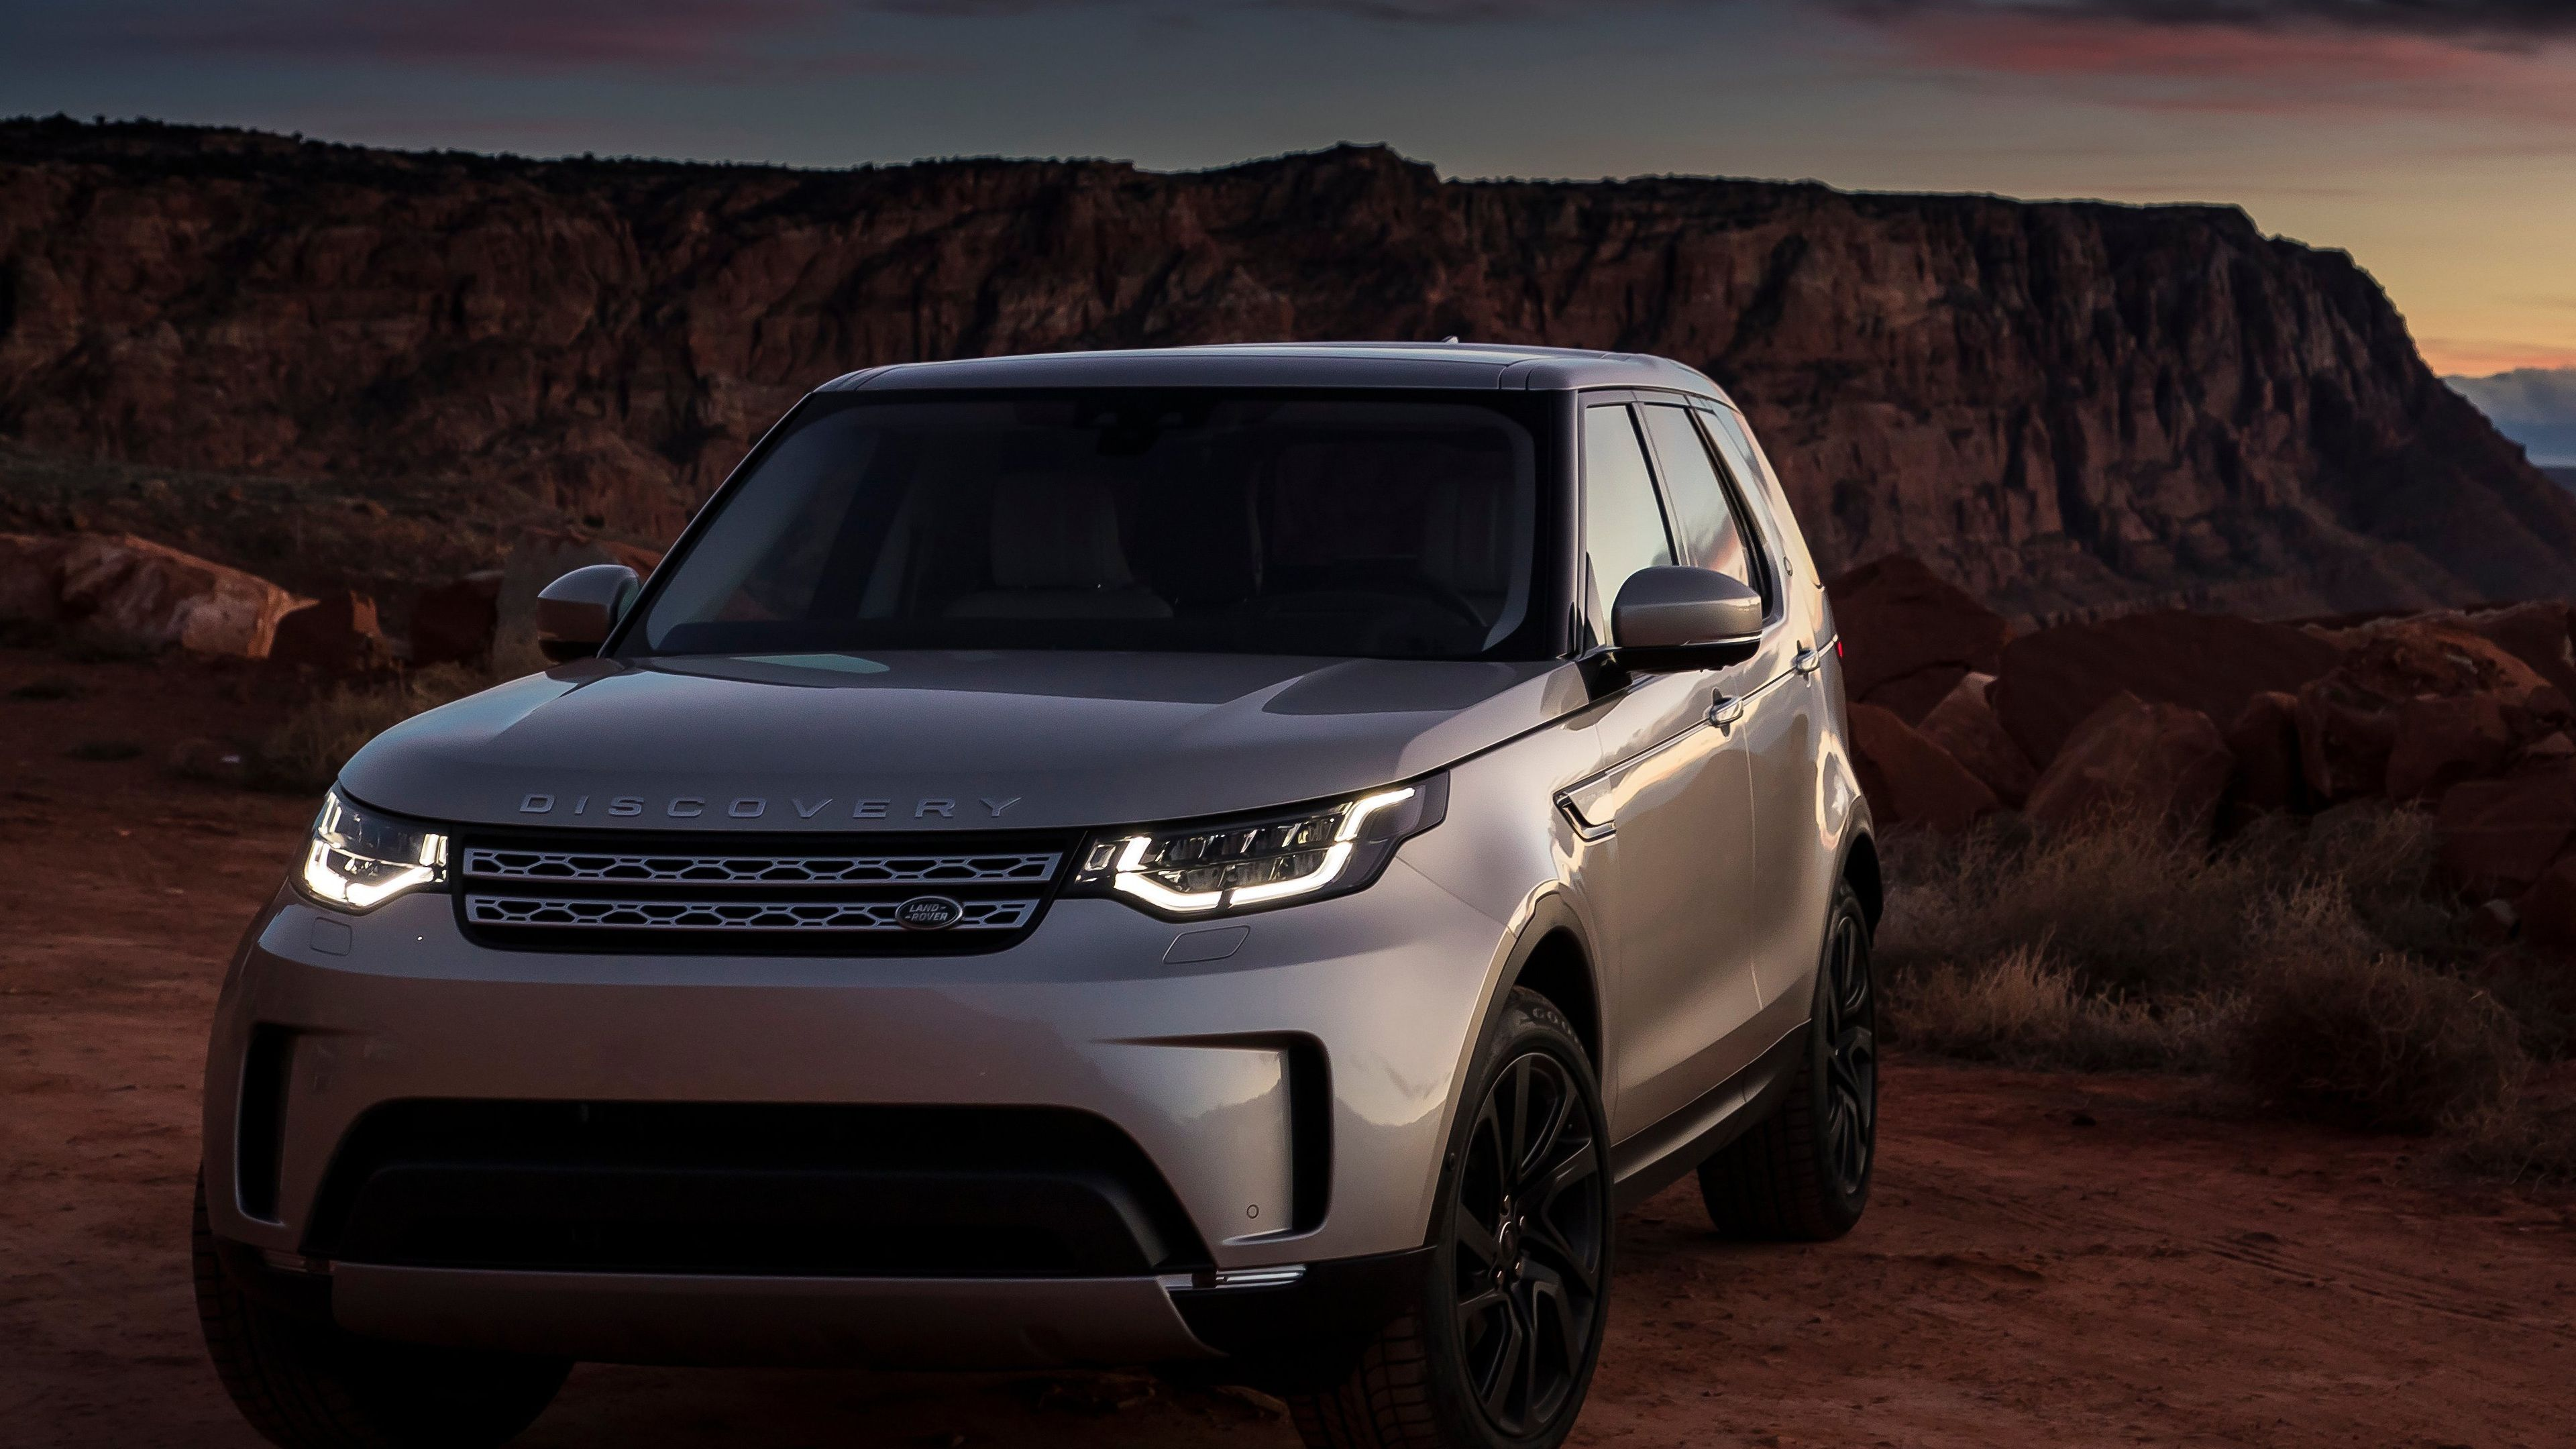 2017 Land Rover Discovery Sd4 Land Rover Wallpapers Cars Wallpapers 2017 Cars Wallpapers Land Rover Land Rover Discovery Land Rover Discovery Sport